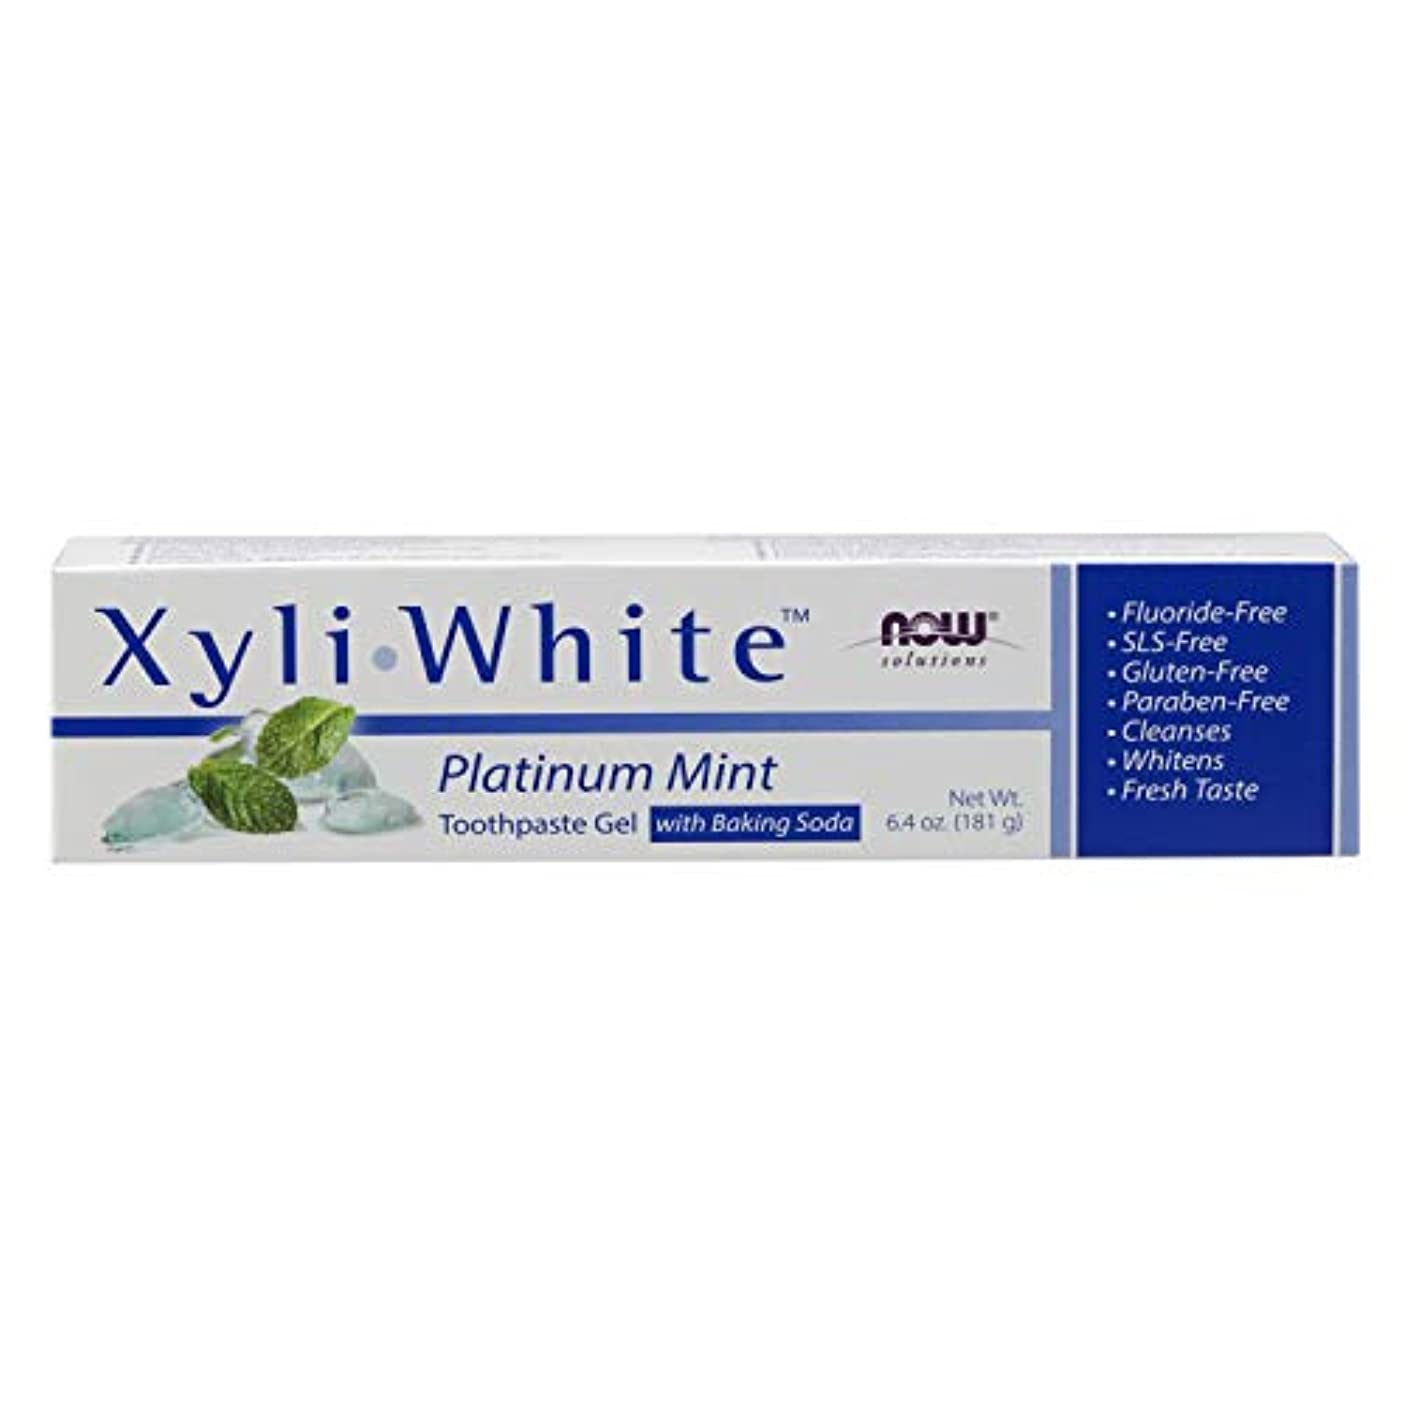 鉄移住するトンネル海外直送品 Now Foods Xyliwhite Platinum Mint with Baking Soda Toothpaste, 6.4 Oz